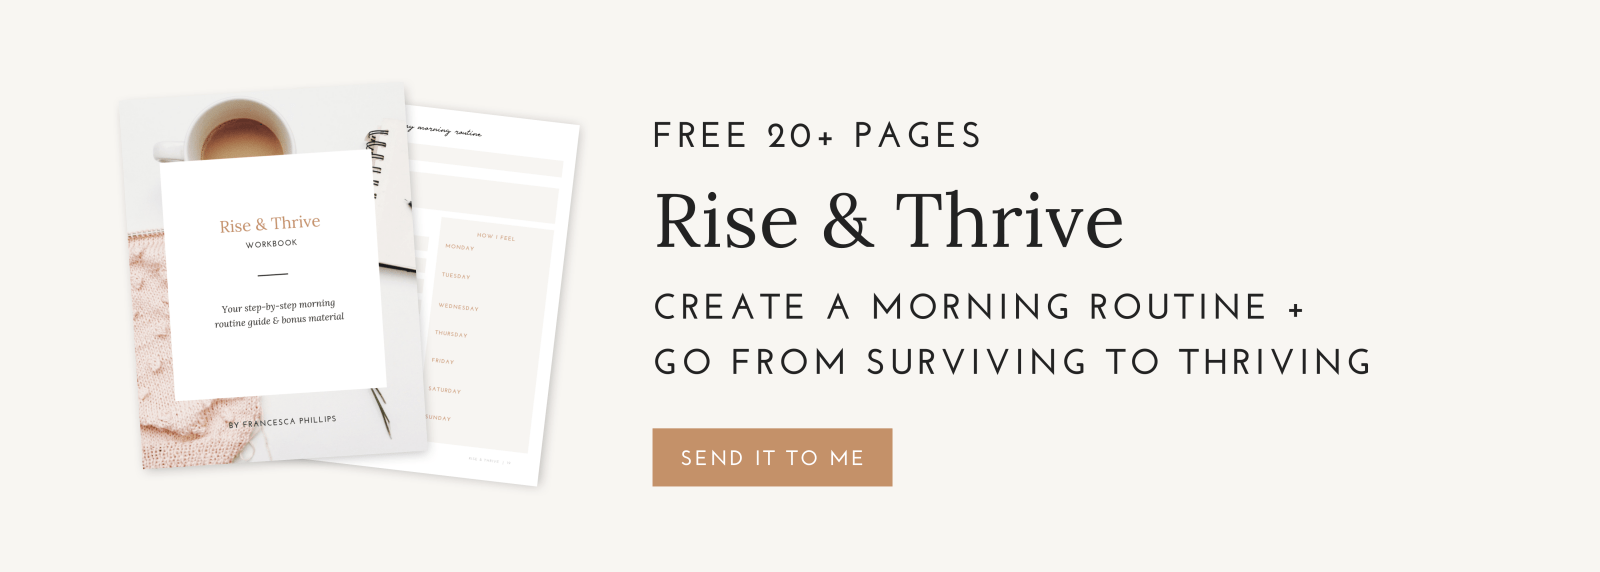 Sign up to receive your free 2+ page Rise and Thrive morning routine guidebook